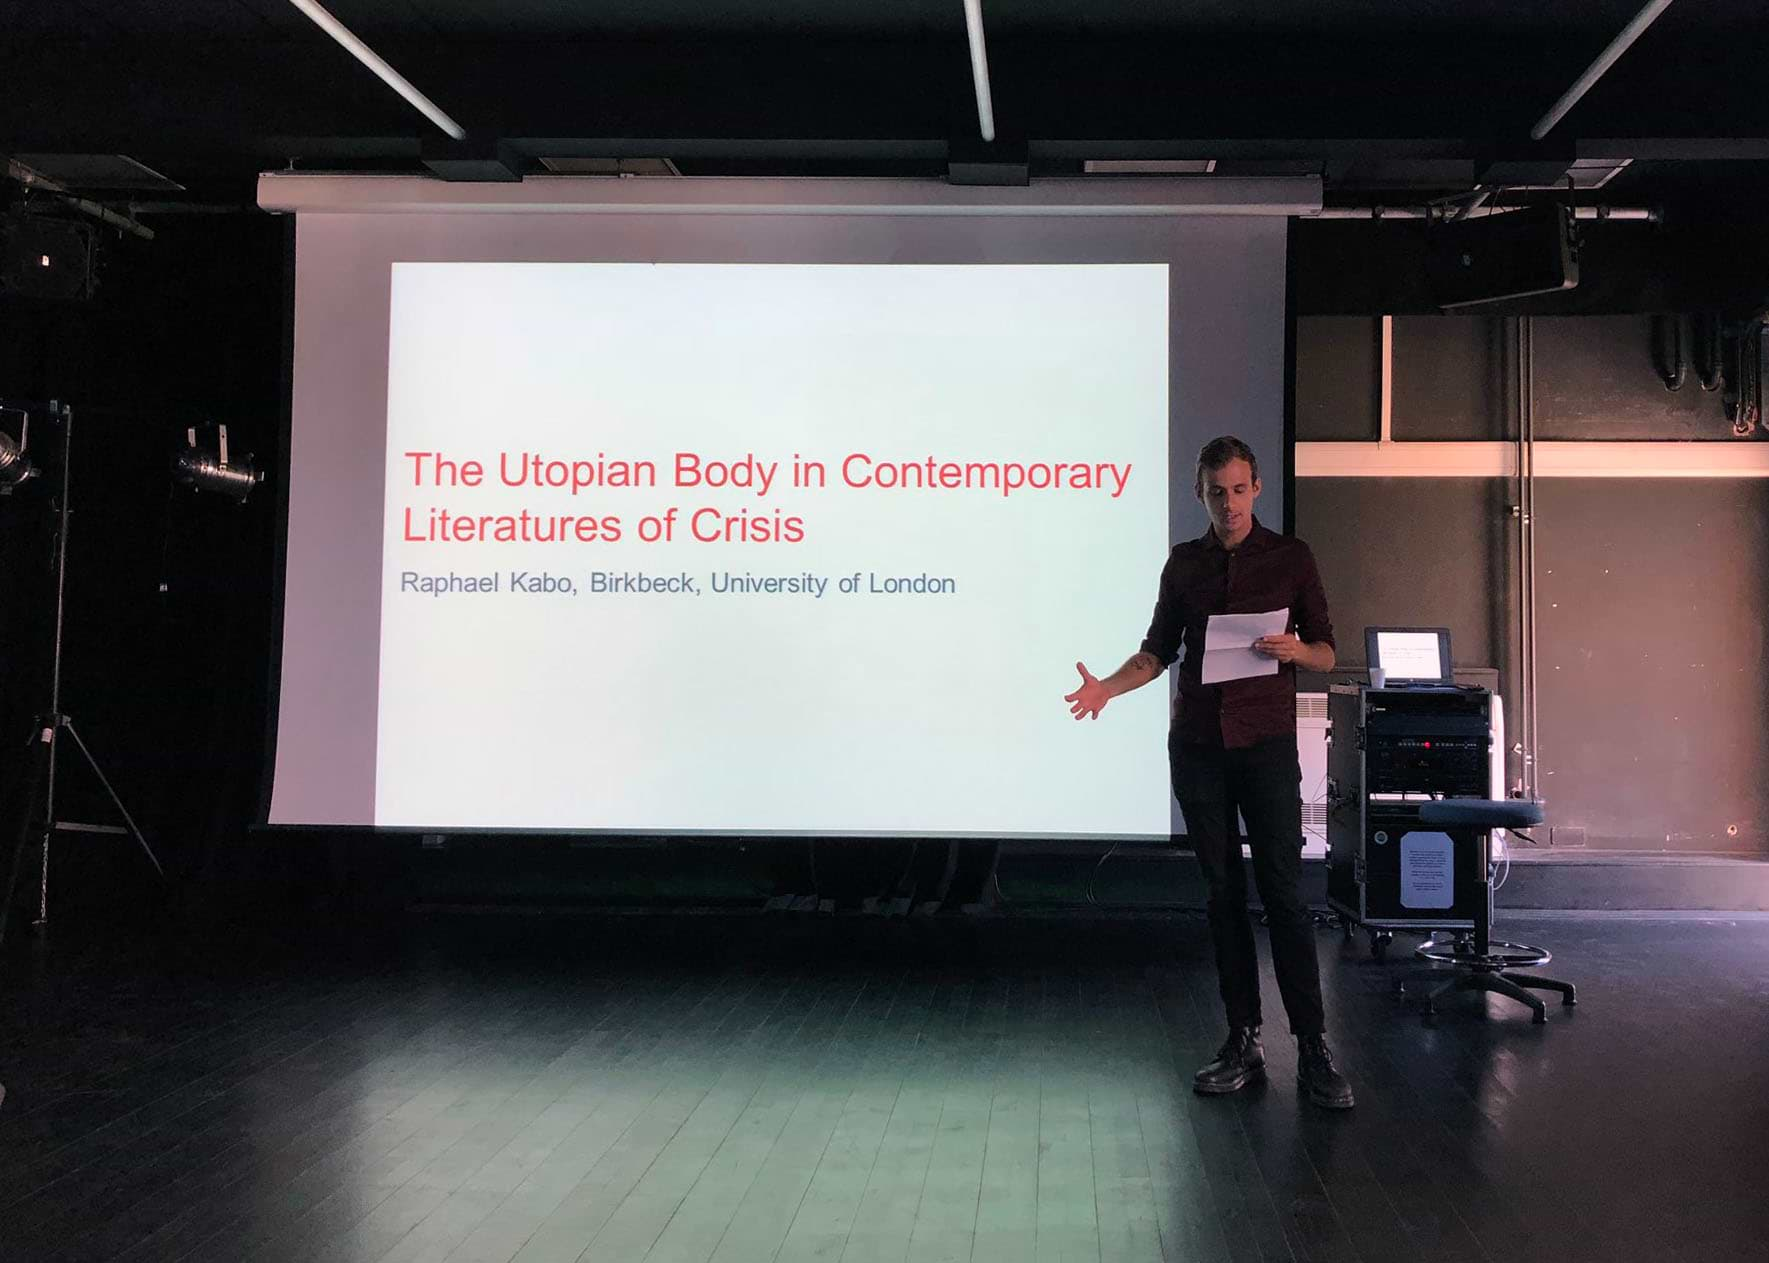 Photograph of me presenting my paper 'The Utopian Body in Contemporary Literatures of Crisis' at BACLS 2018, Loughborough University, UK. Photograph by Carly Robinson (@carlymarierobbo)